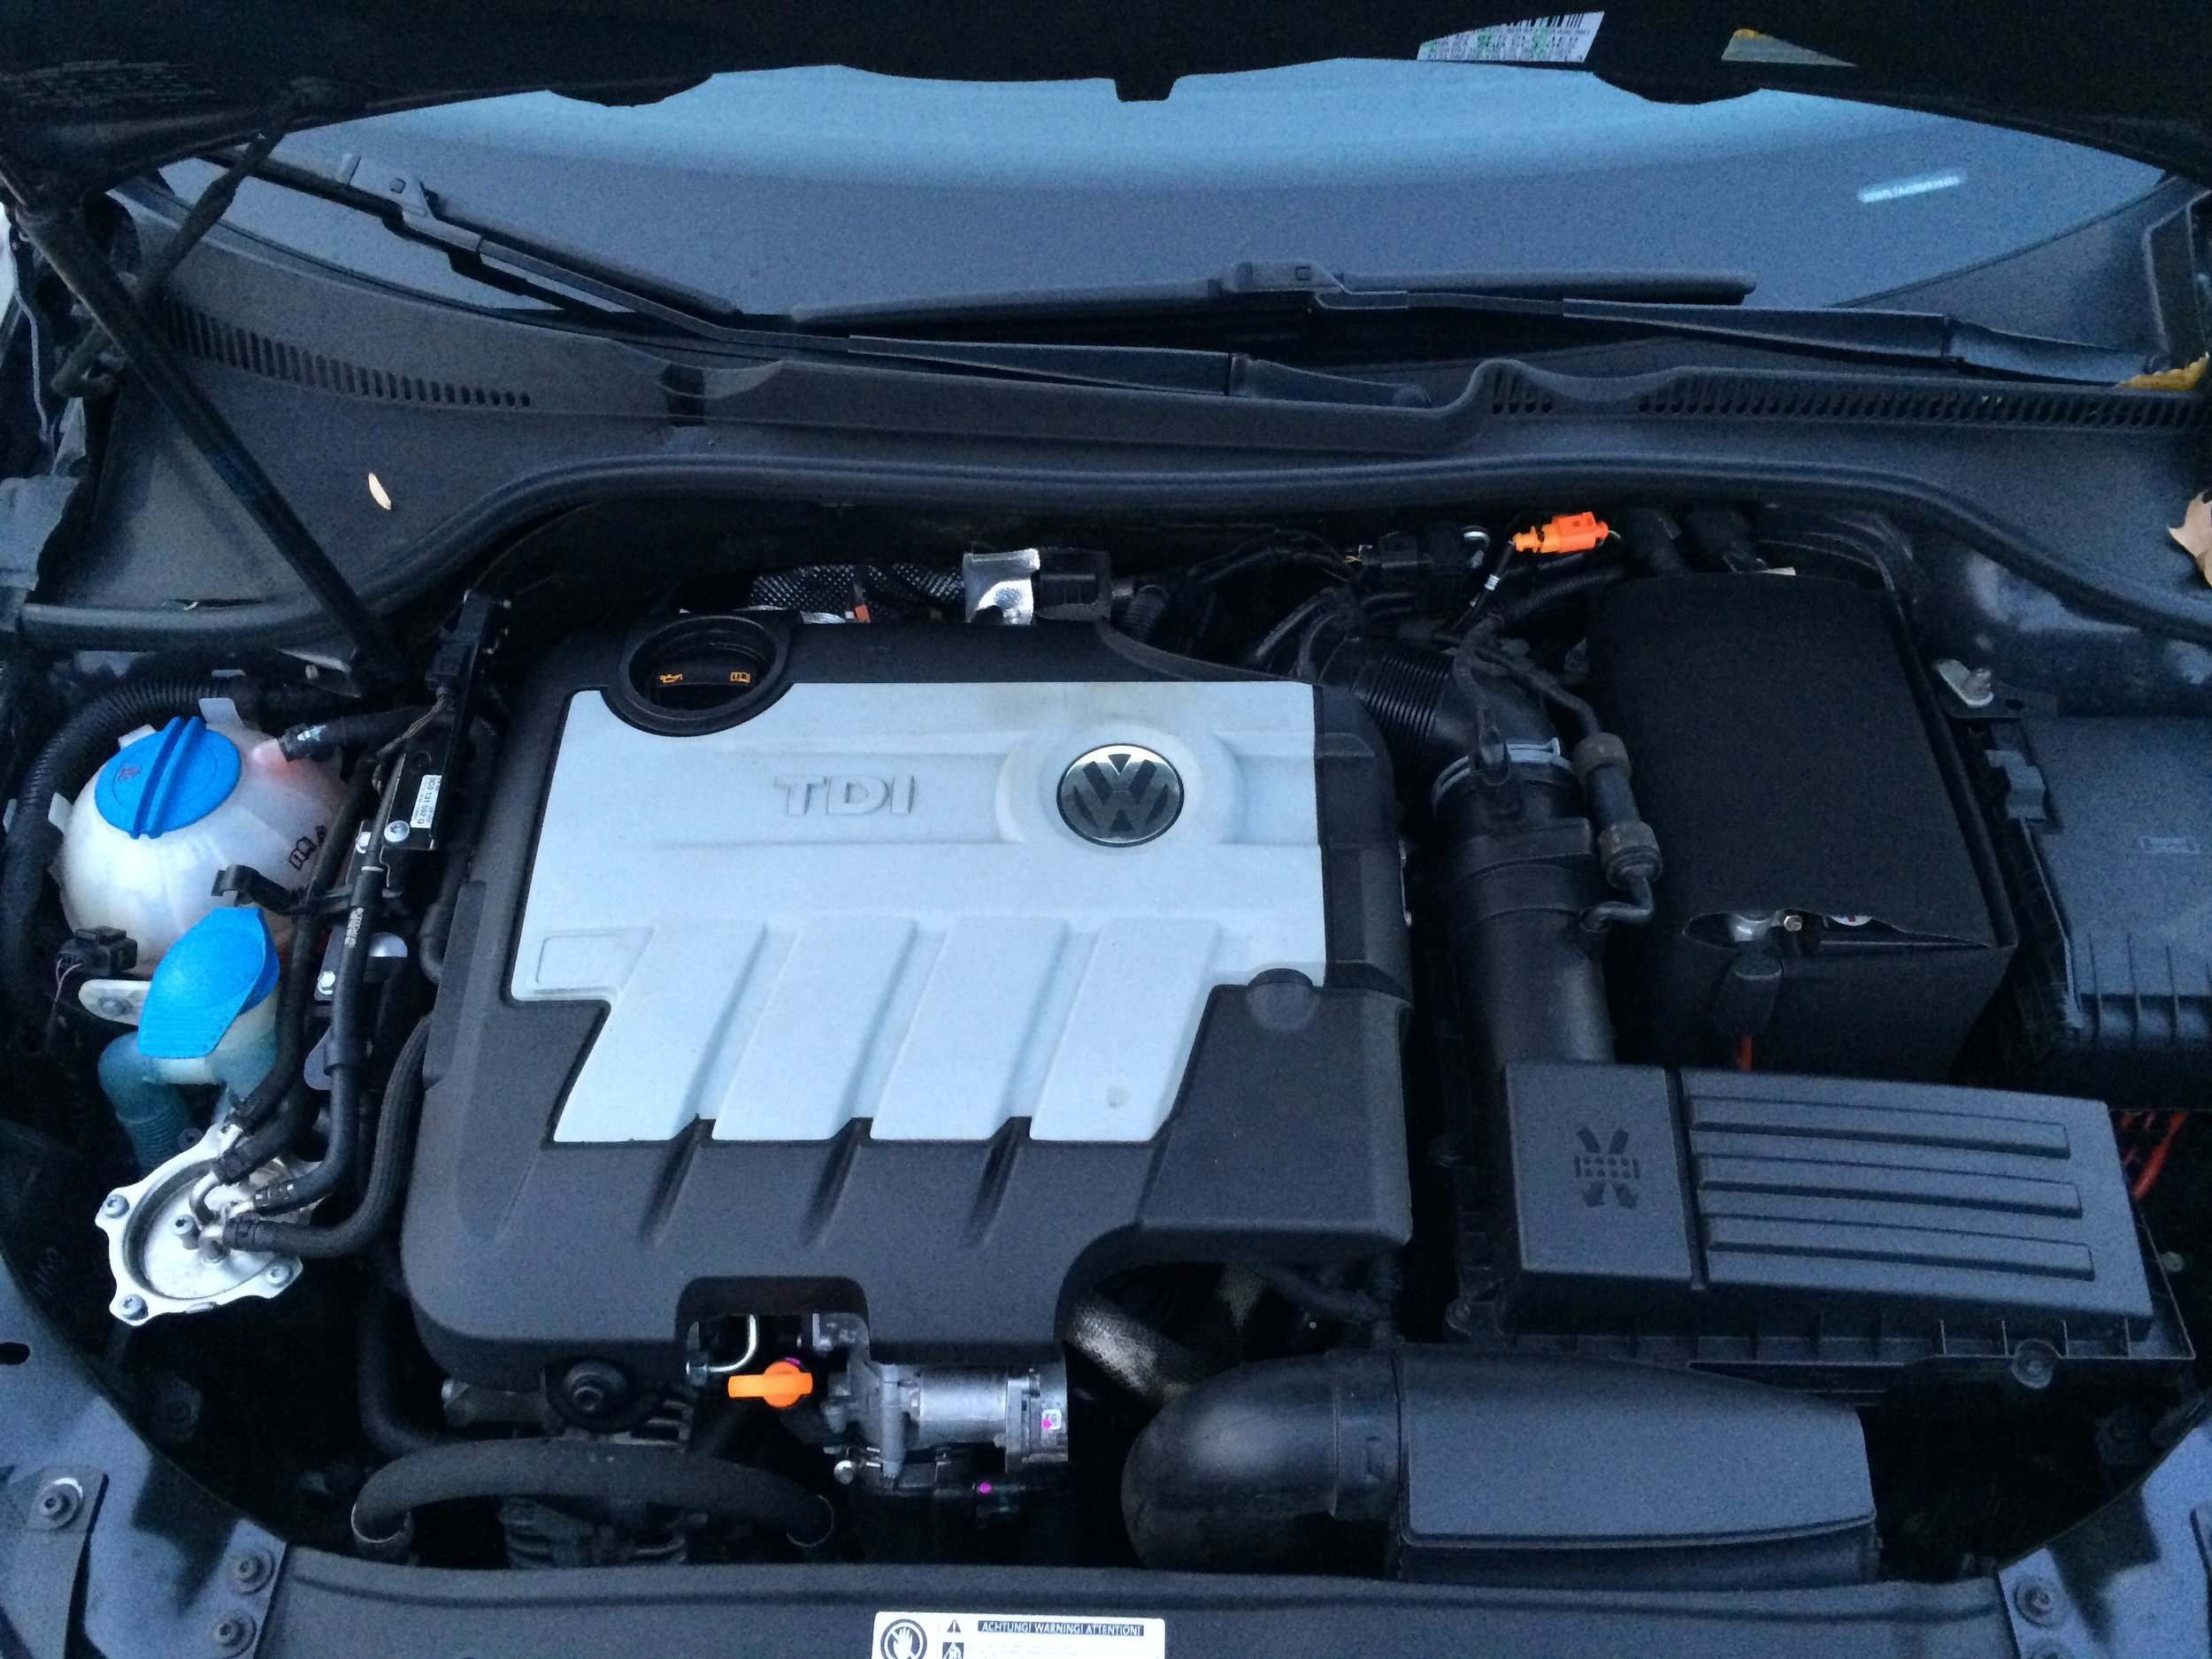 TDI engine bay with 4-cylinder turbo